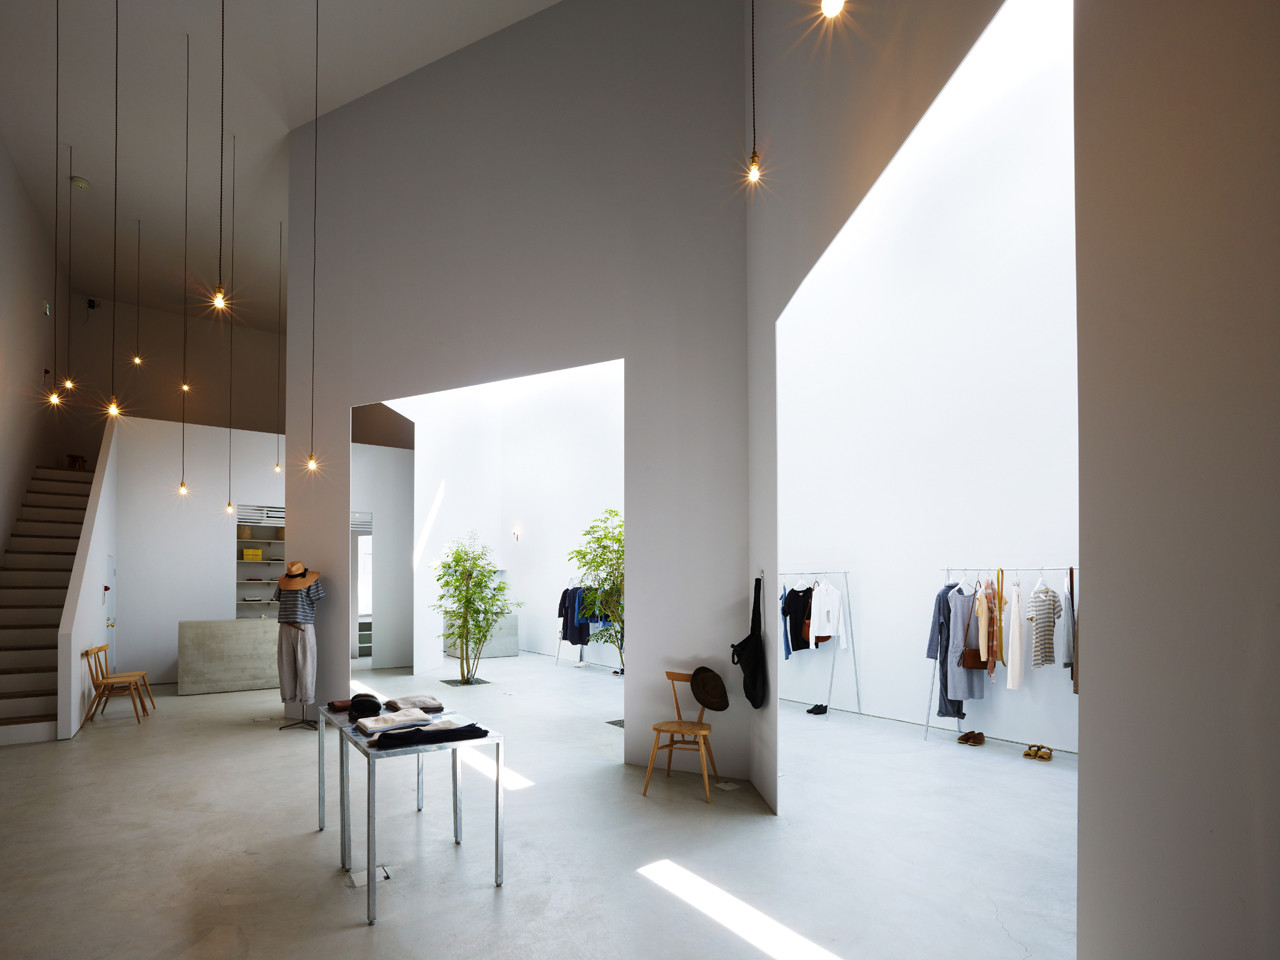 Tienda 52 / Suppose Design Office, © Toshiyuki Yano